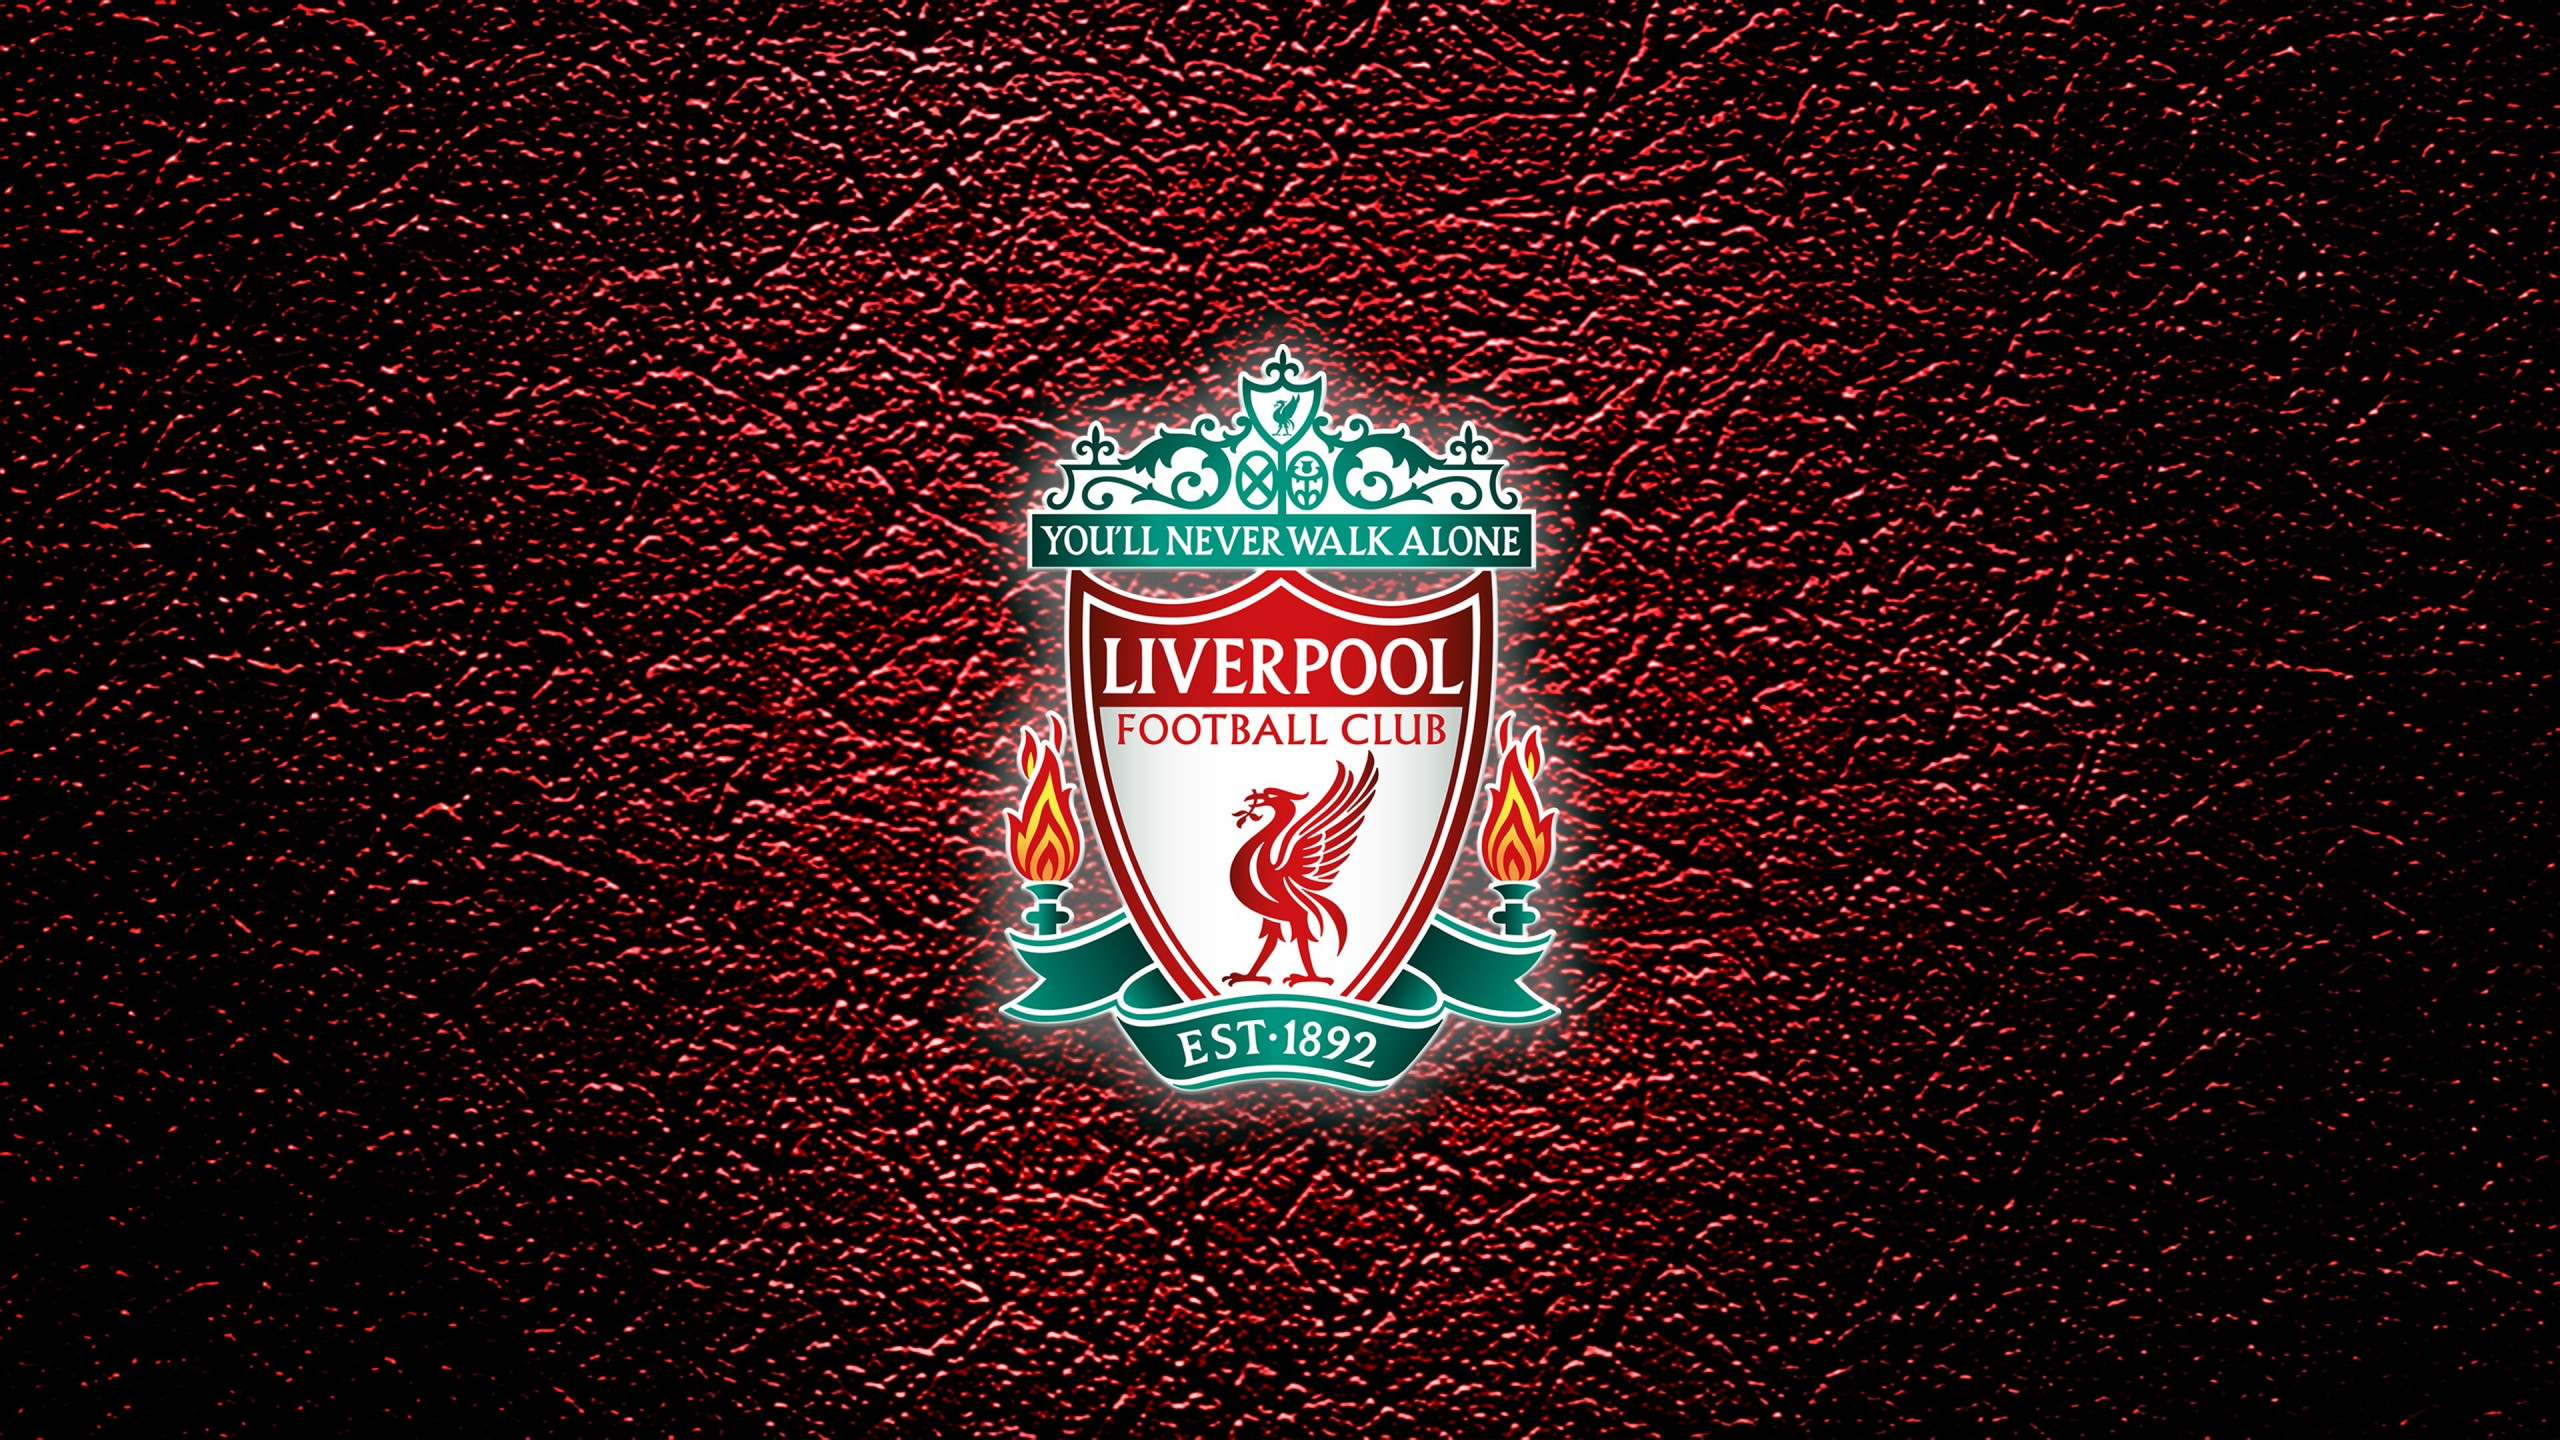 Liverpool - You'll never walk alone wallpaper 2560x1440